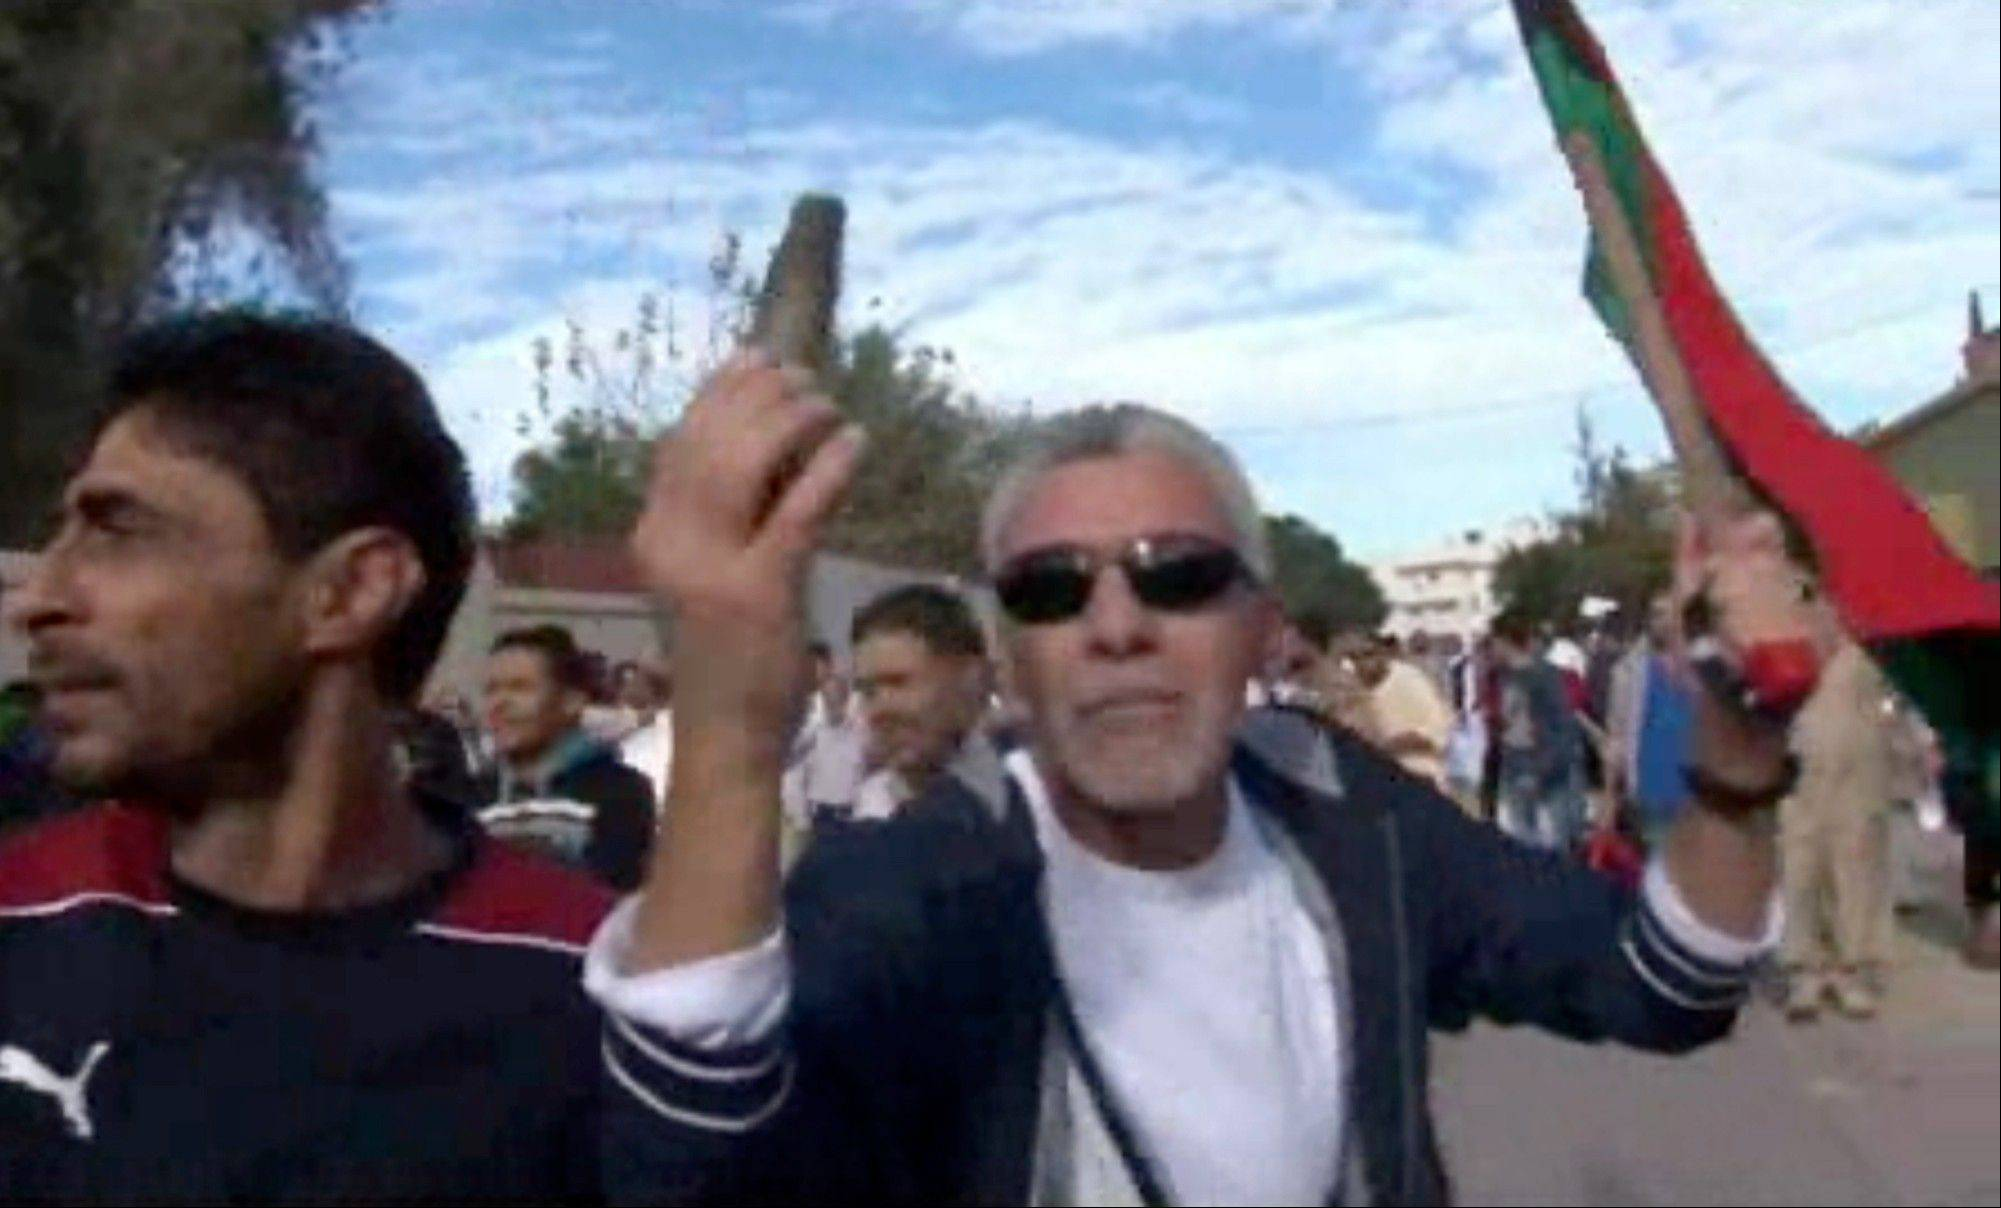 A protester holds up spent ammunition Friday in Tripoli, Libya after militiamen attacked peaceful protesters demanding the disbanding of the country�s rampant armed groups.